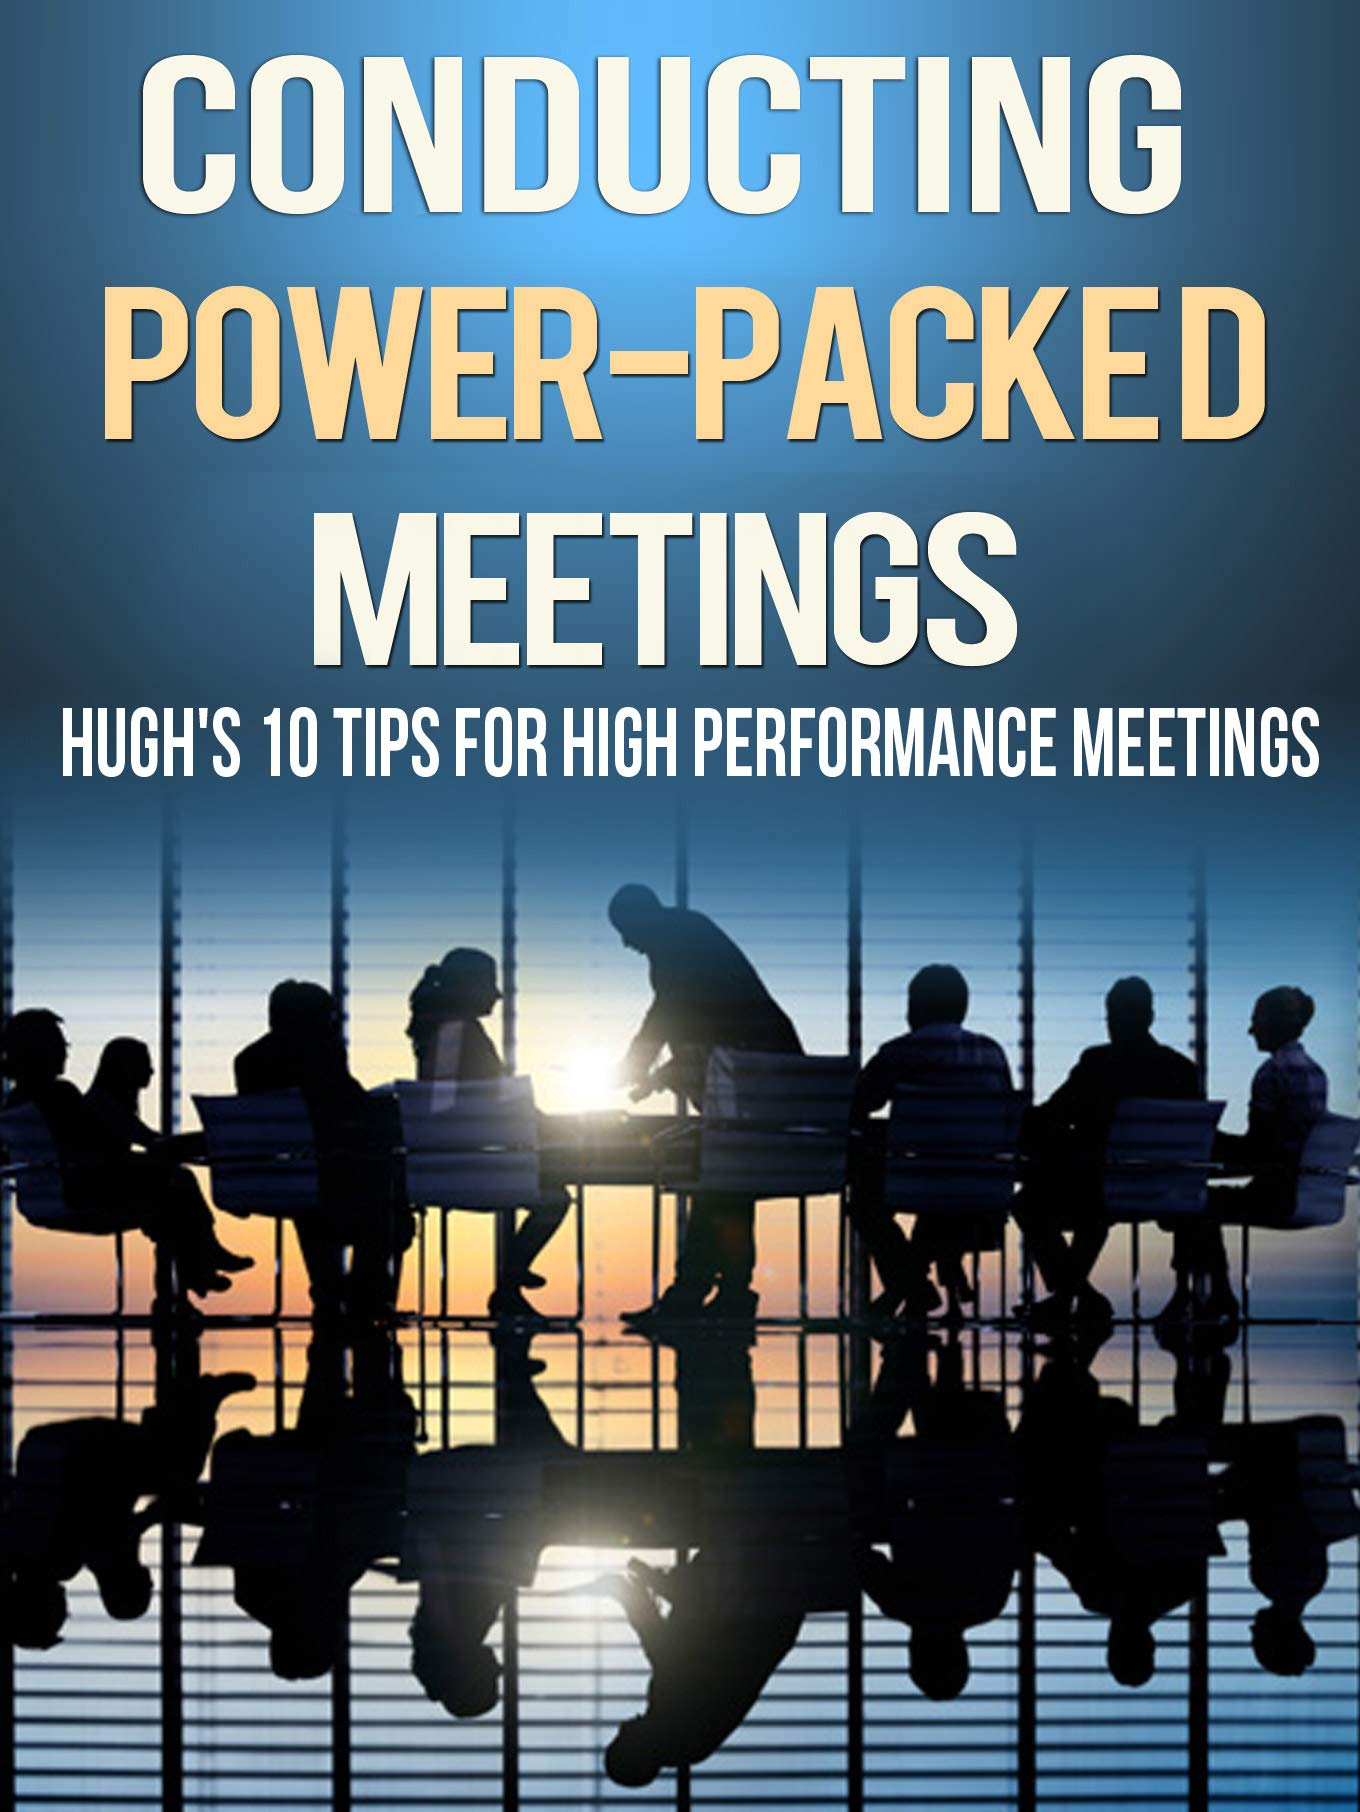 Conducting Power Packed Meetings: Hugh's 10 Tips for High Performance Meetings